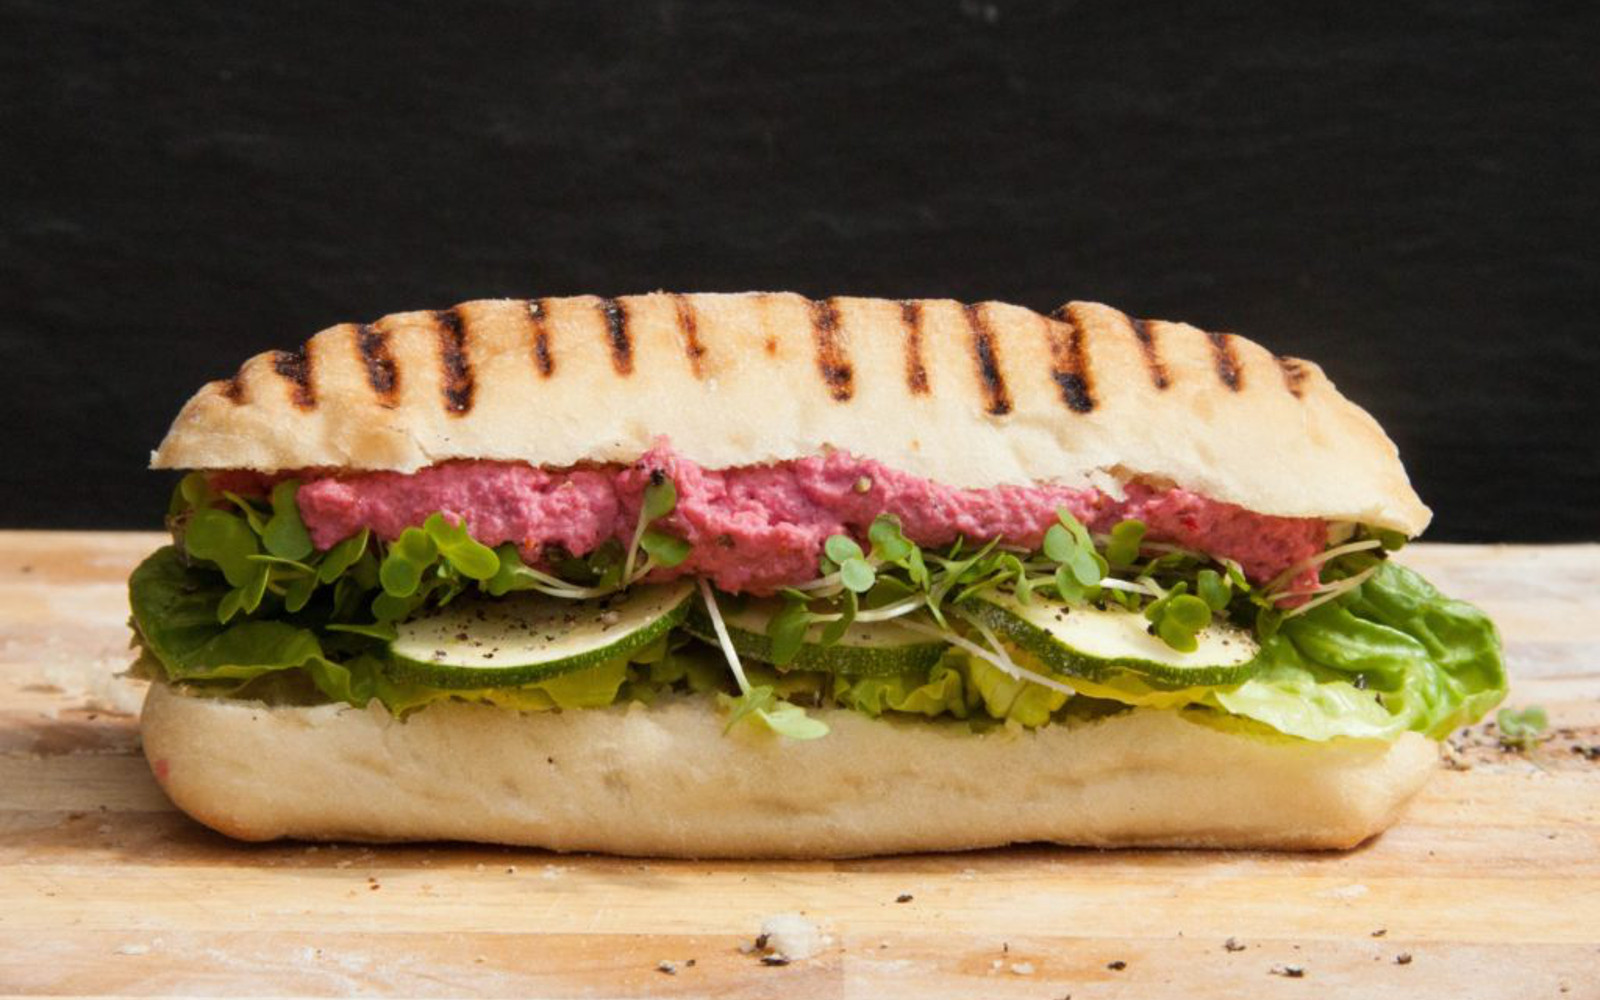 Beet Hummus and Greens Panini